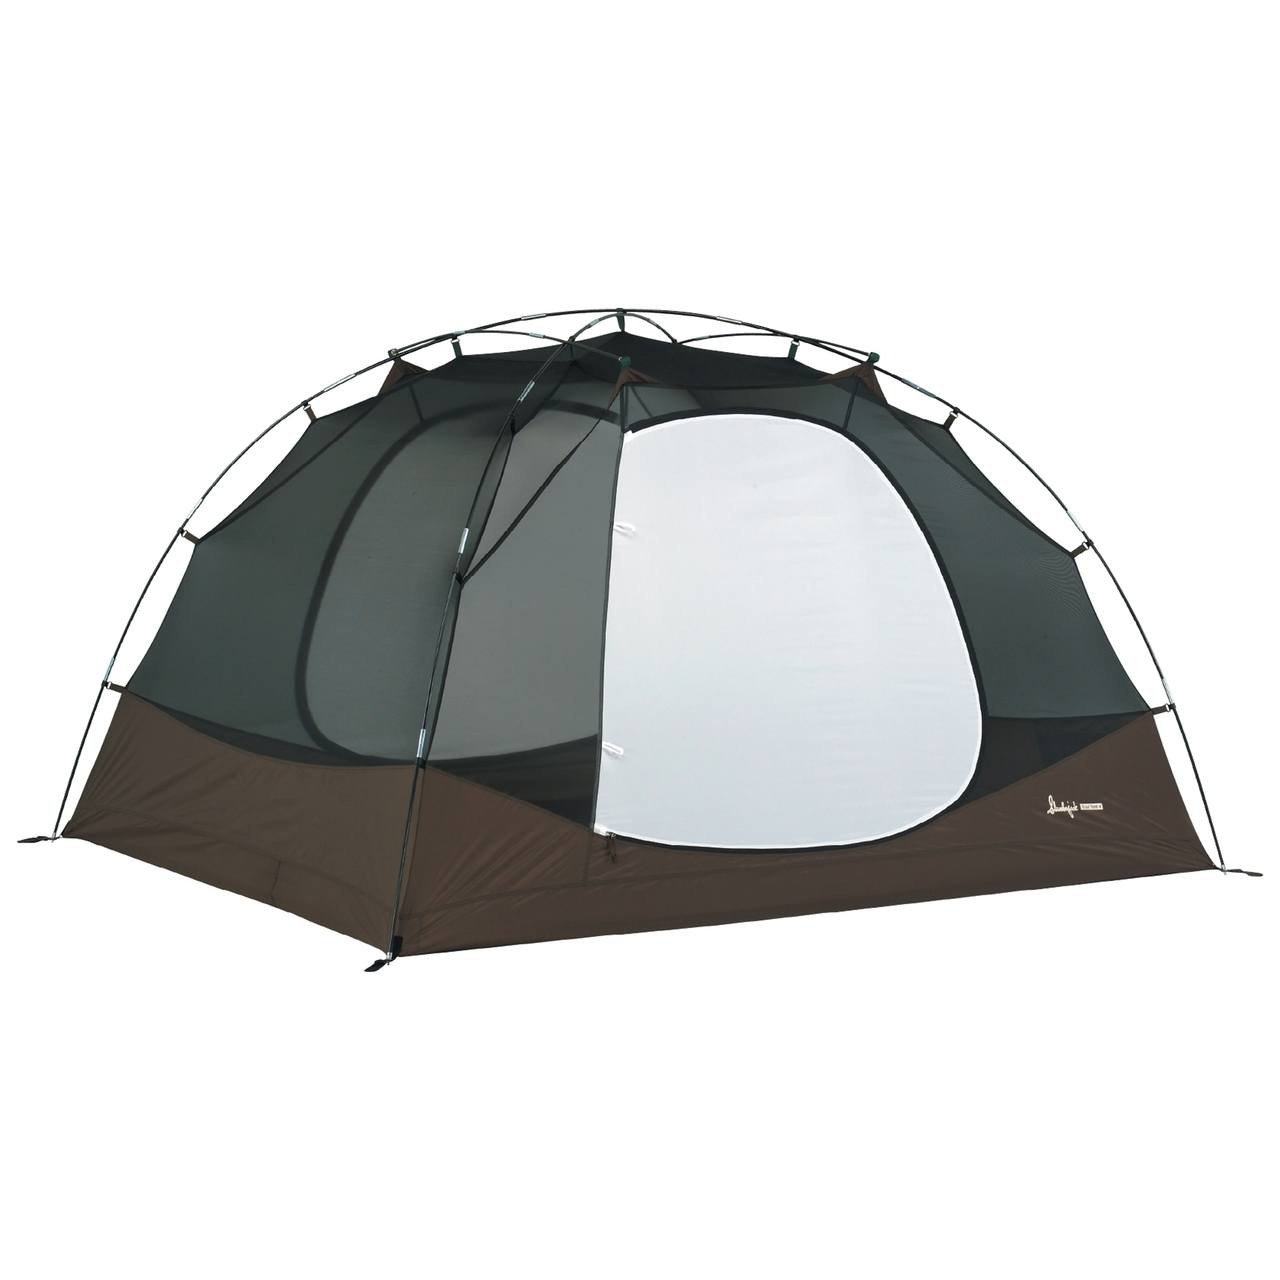 Image 1  sc 1 st  Slumberjack & Slumberjack Trail Tent 4 | Backpacking 4-Person Tent | Camping